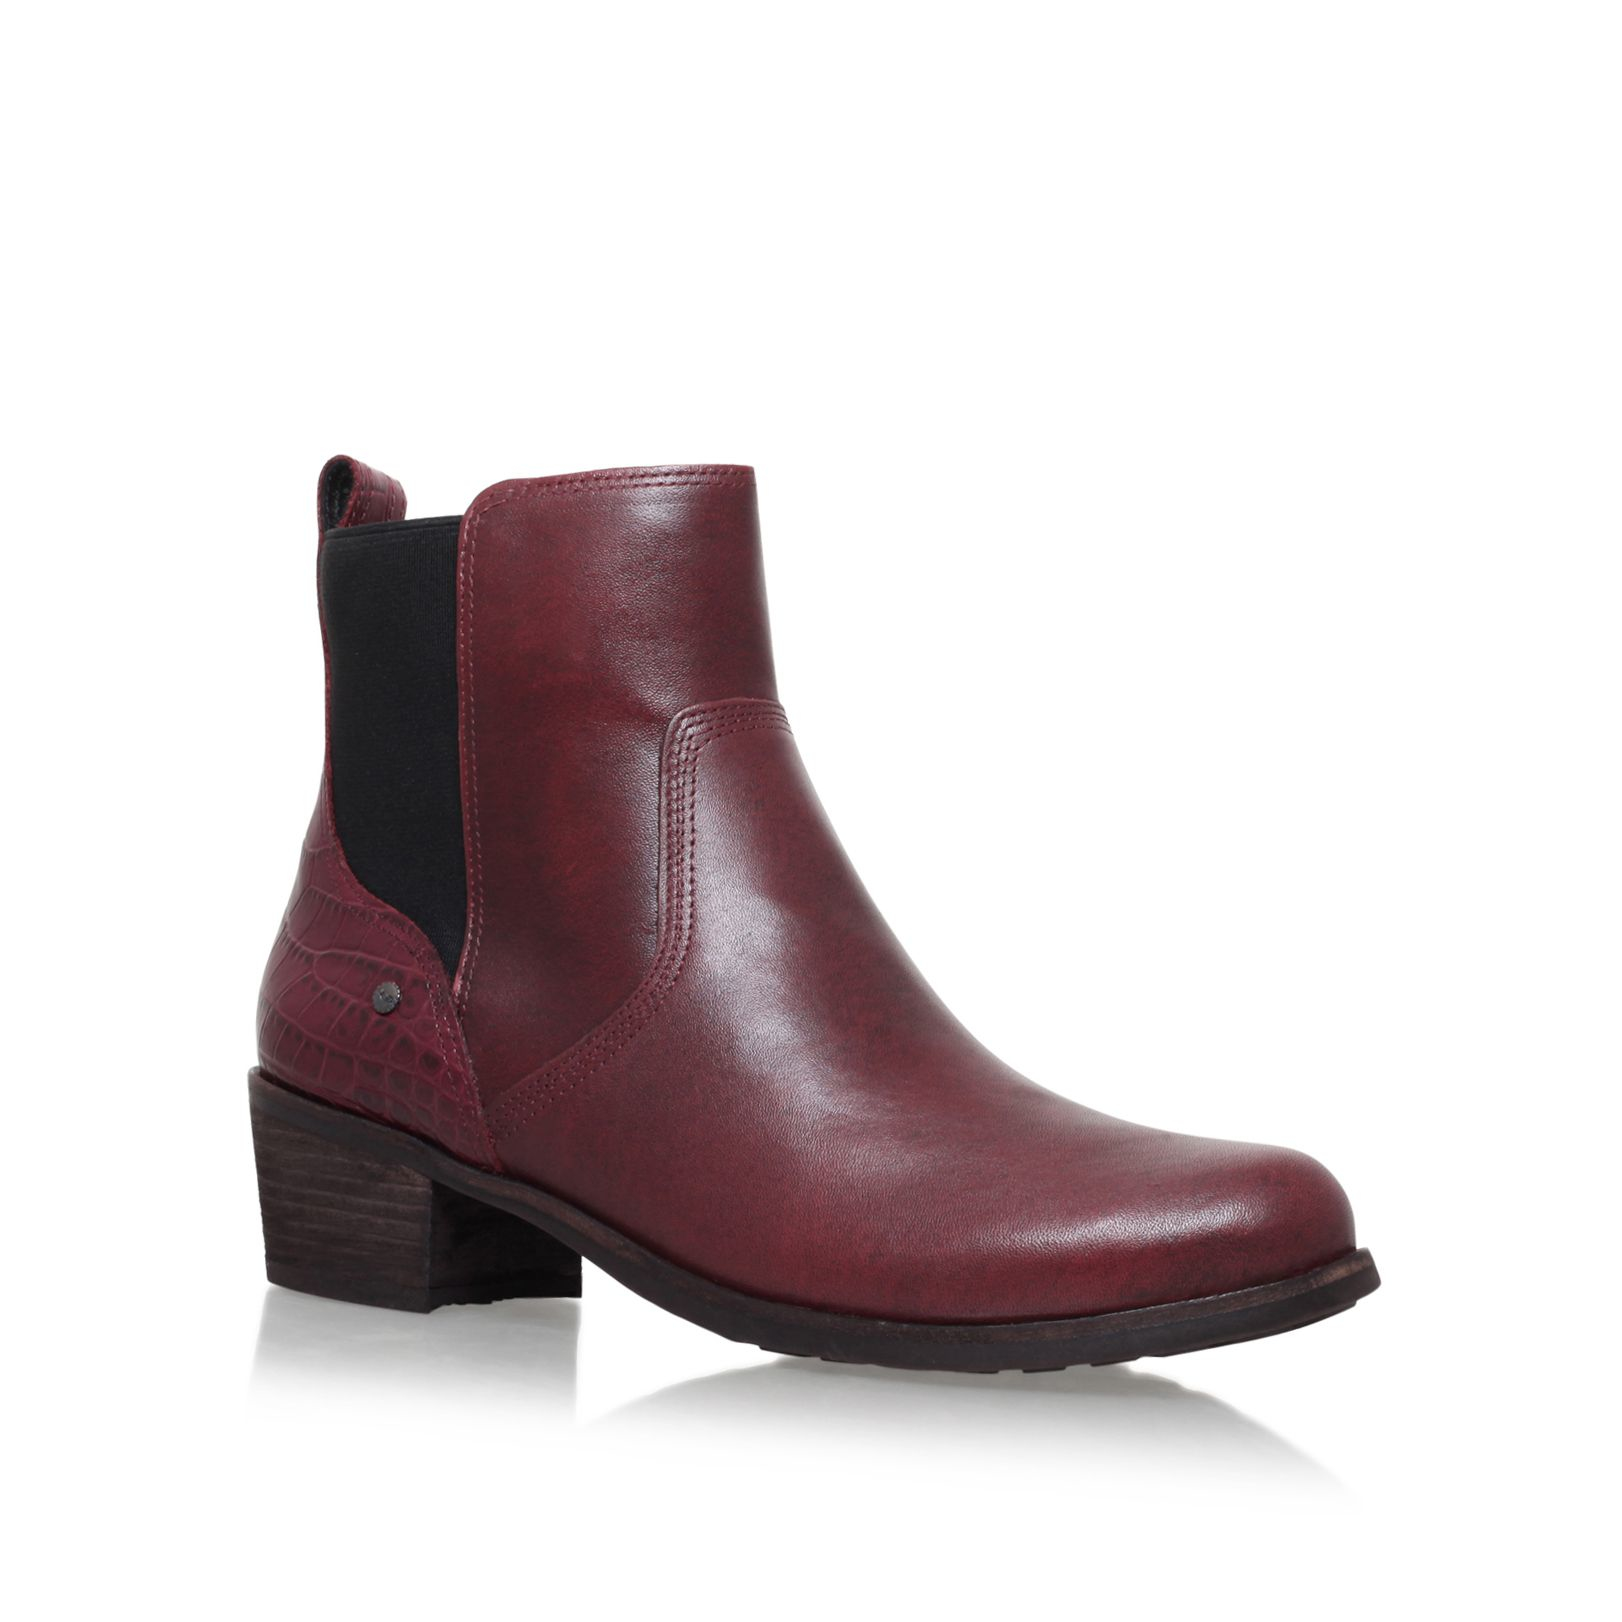 64be098550c Ugg Ankle Boots House Of Fraser - cheap watches mgc-gas.com